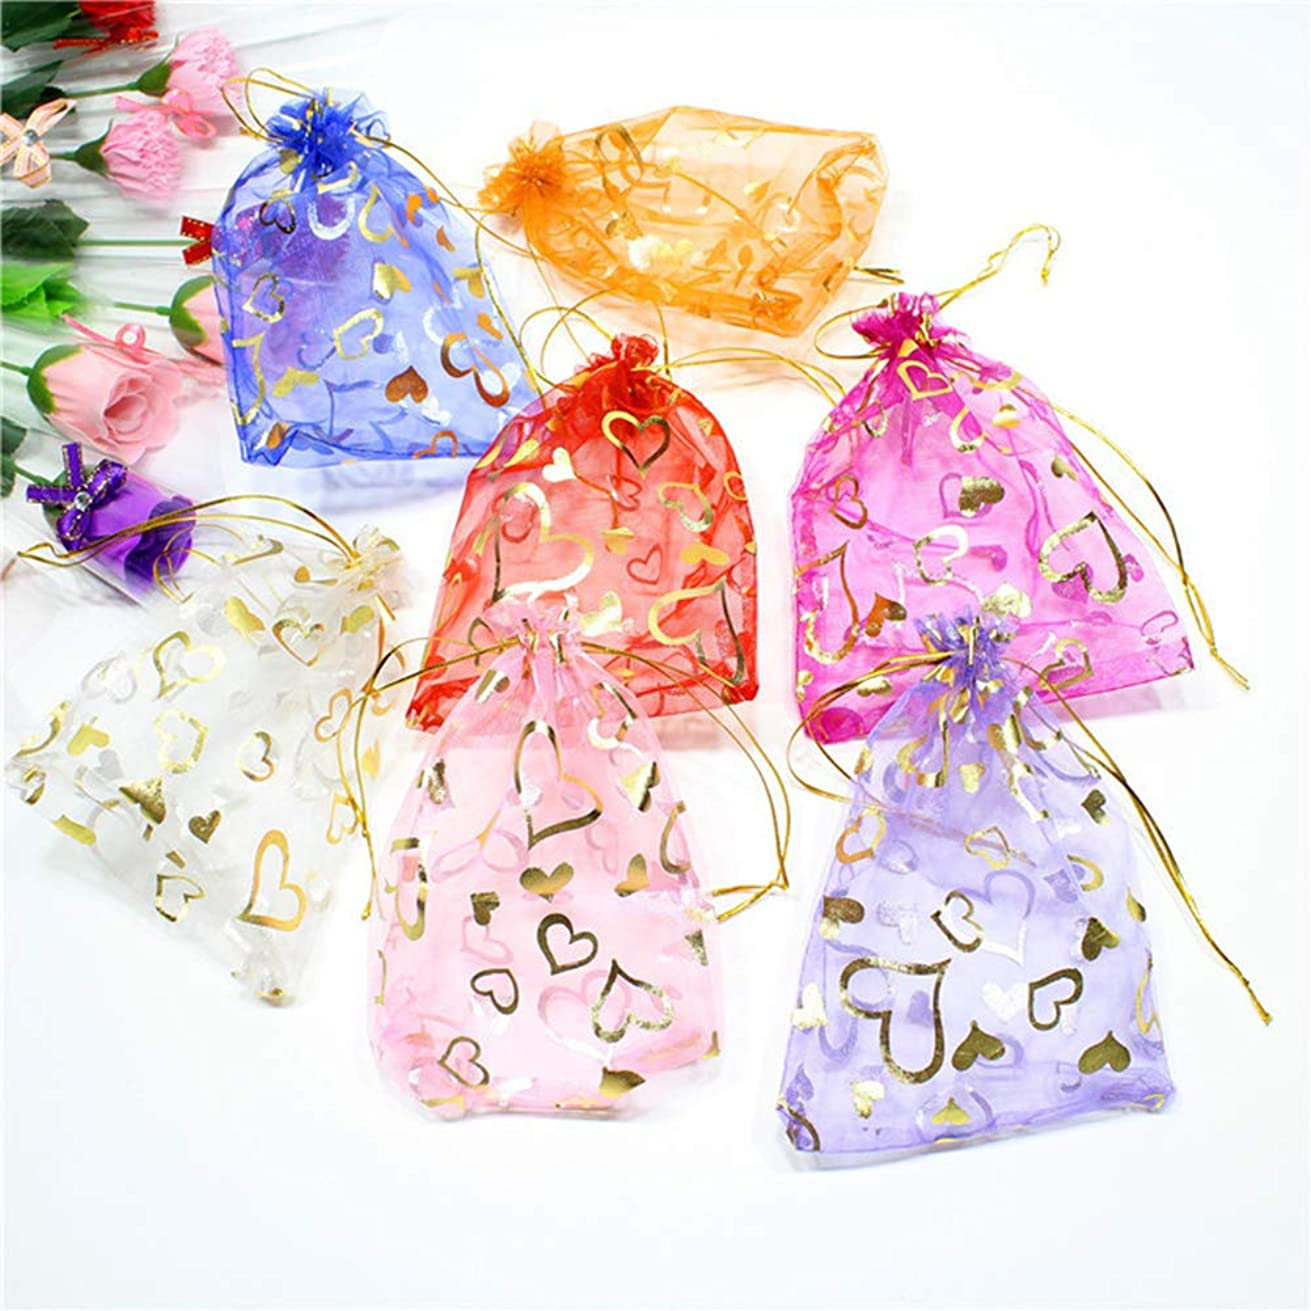 100 Pcs Sheer Drawstring Organza 5 x 7 Multicolor Jewelry Pouches Wedding Party Christmas Favor Gift Bags with Exquisite Bronzing Heart Pattern (Multicolor-1, 5